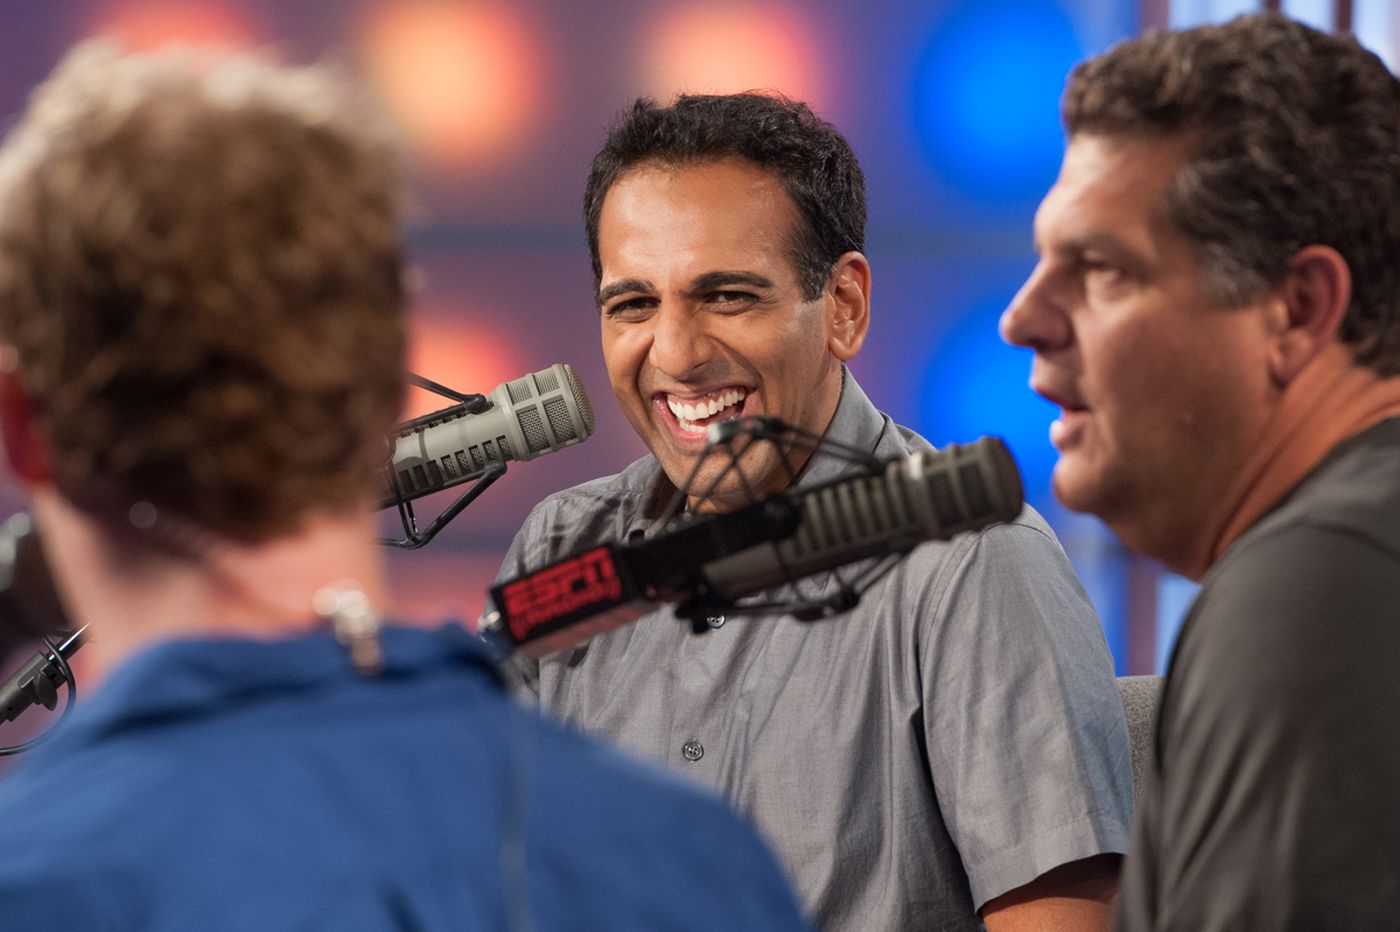 ESPN fires 'Baseball Tonight' anchor Adnan Virk following investigation